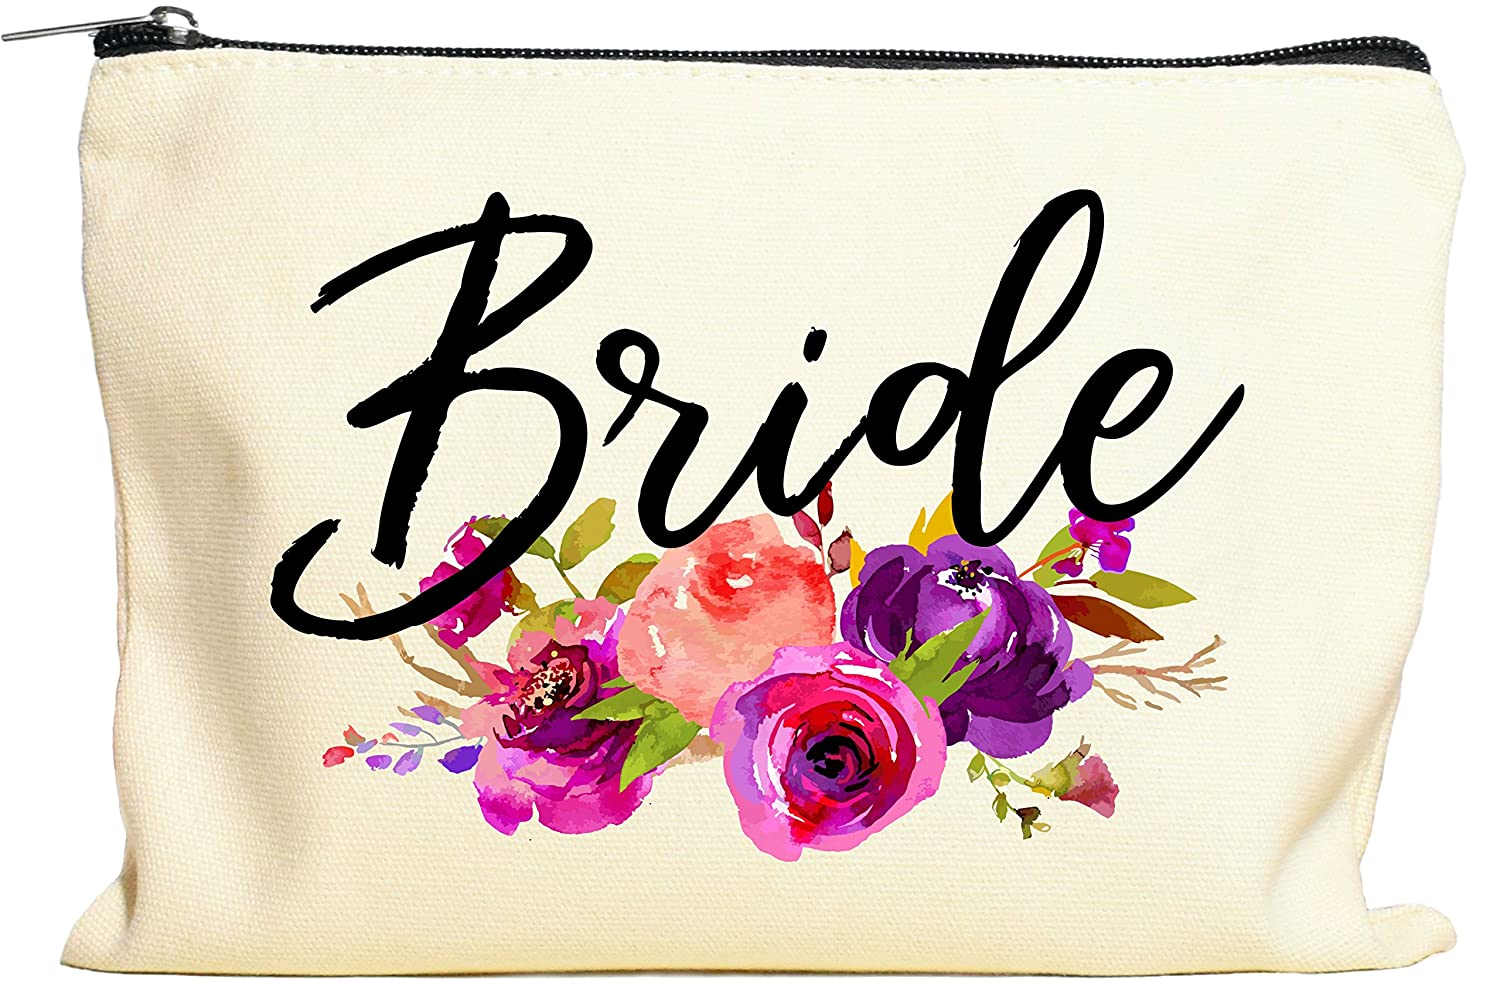 Bride Makeup Bag, Bride Gift, Bride Cosmetic Bag, Engagement Gift, Bride Gift Bag, Miss To Mrs, Bridal Shower, Engagement Gift